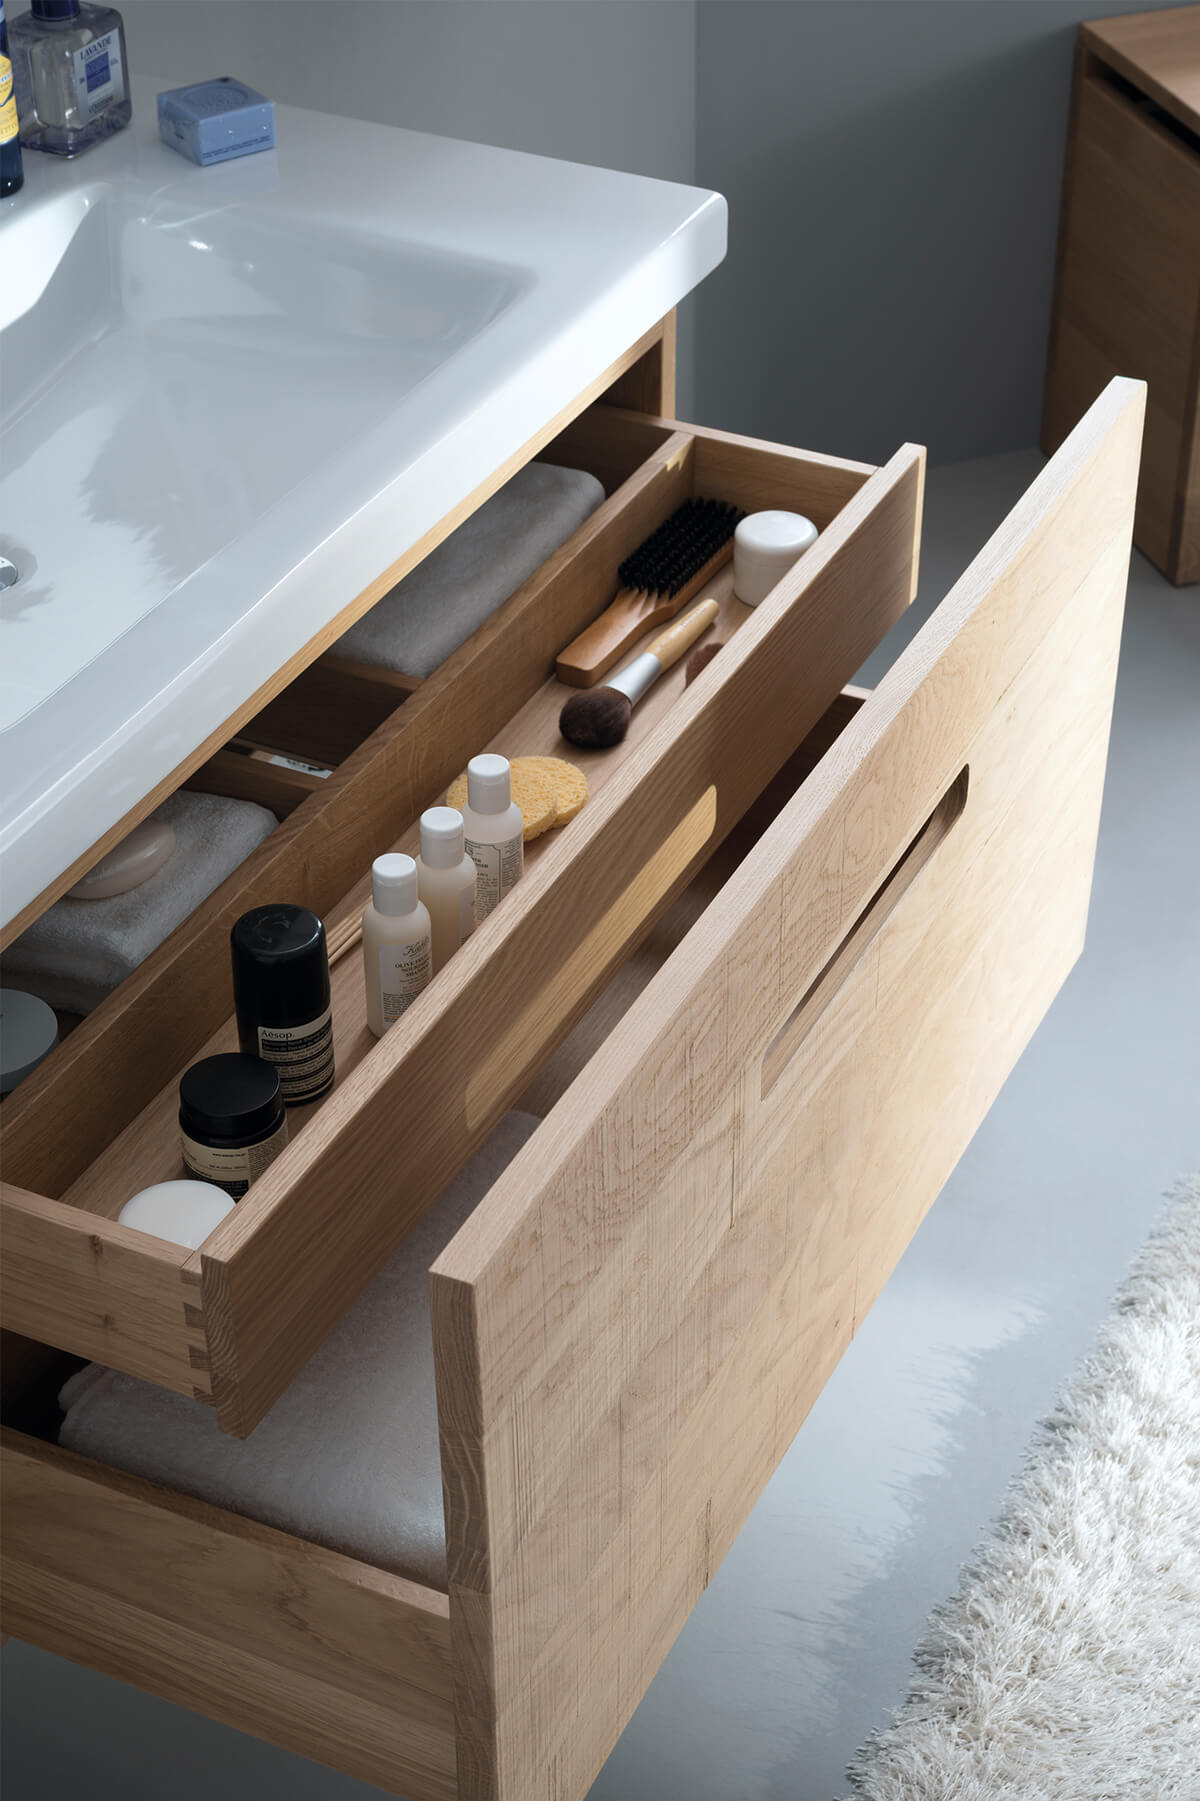 Forget Messy Makeup Baskets and Go for Custom Storage